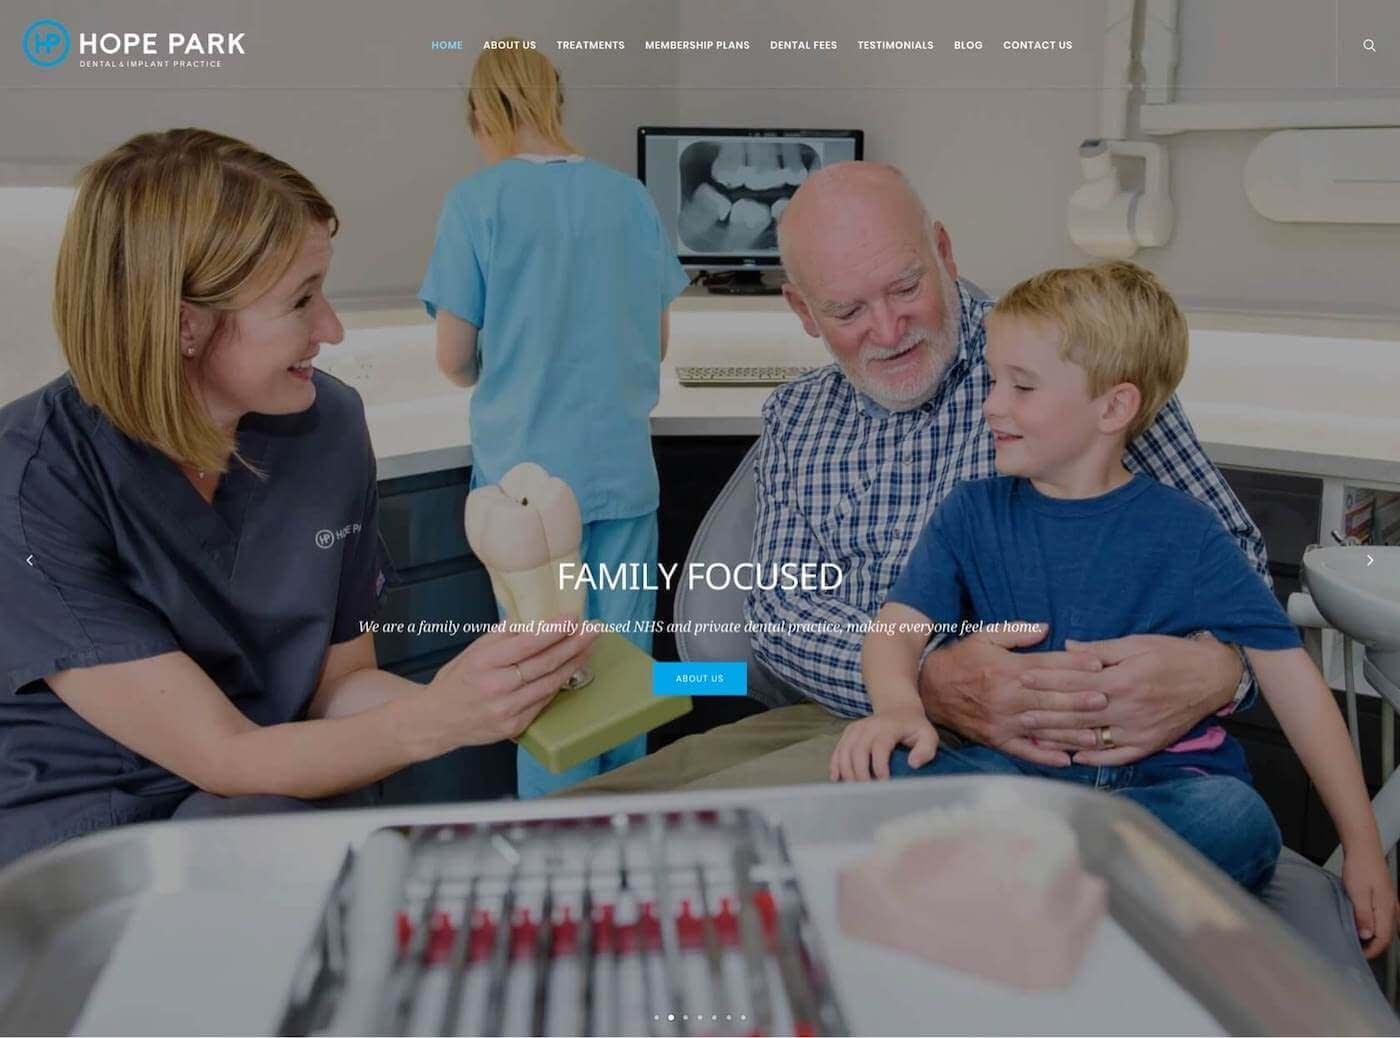 Web design for Hope Park Dental Practice, Edinburgh